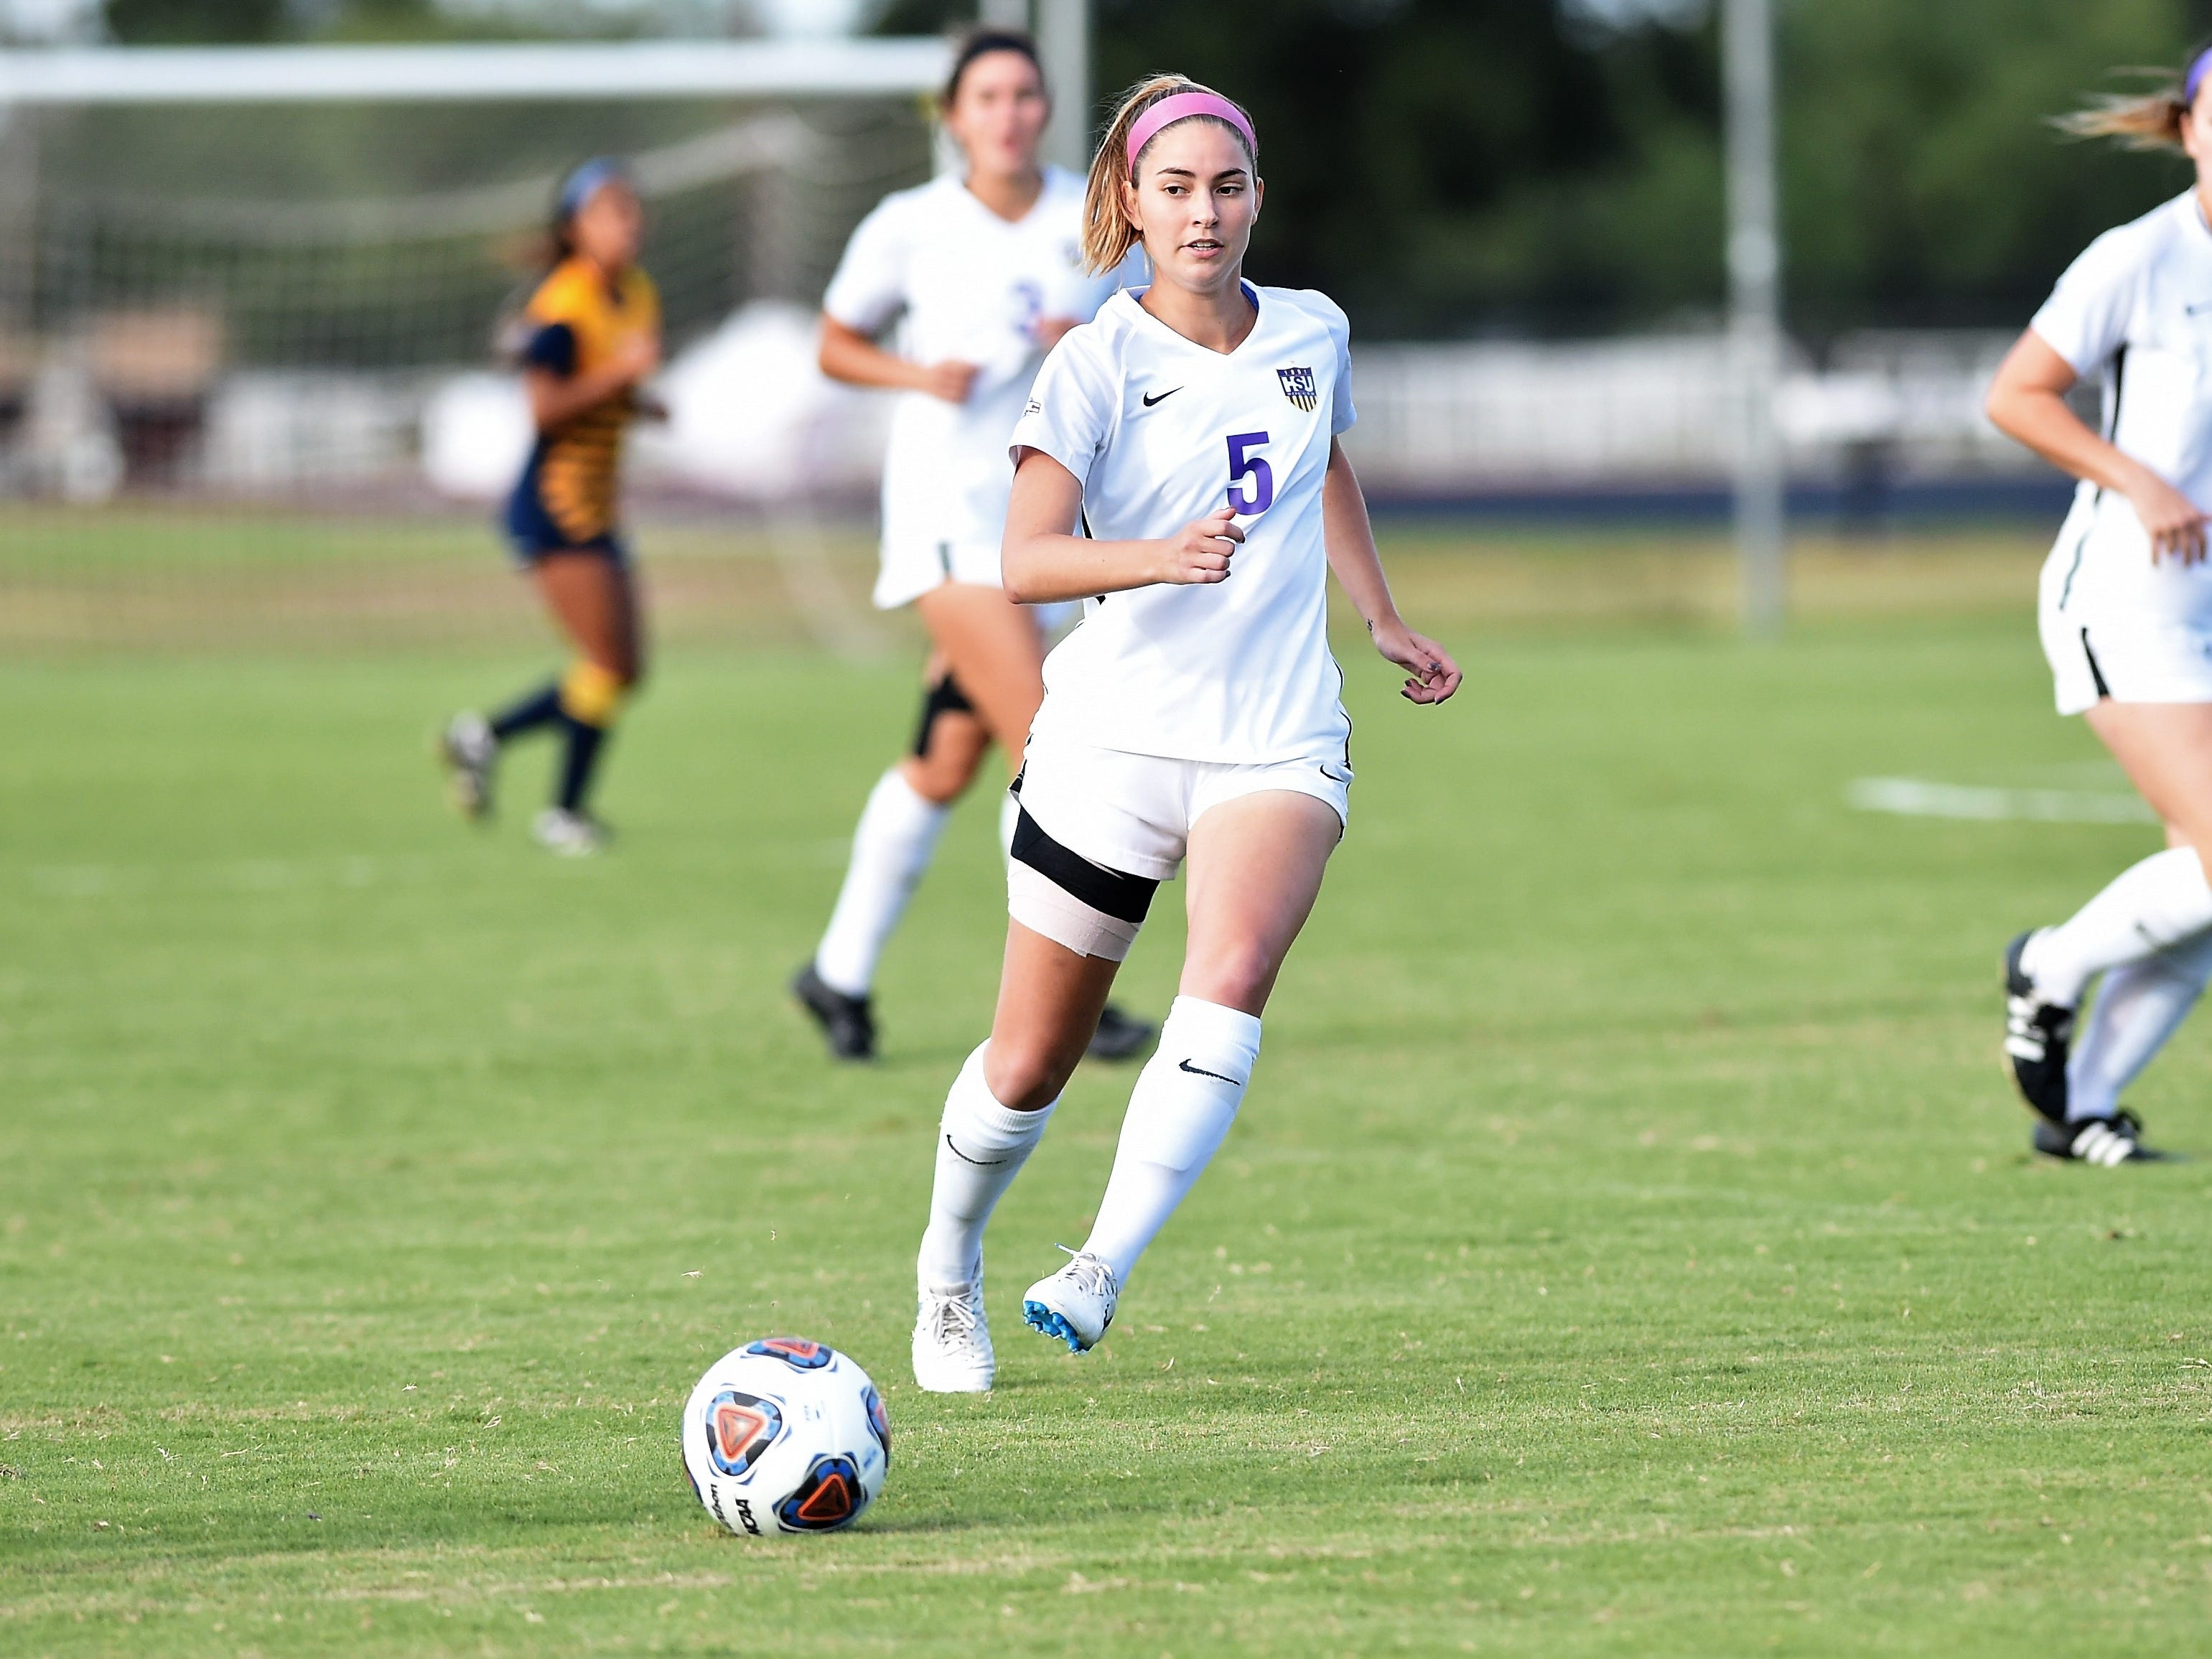 Hardin-Simmons midfielder Evan Pipkin (5) lays a pass off against Howard Payne at the HSU Soccer Complex on Thursday, Oct. 11, 2018. The Cowgirls won 4-1.